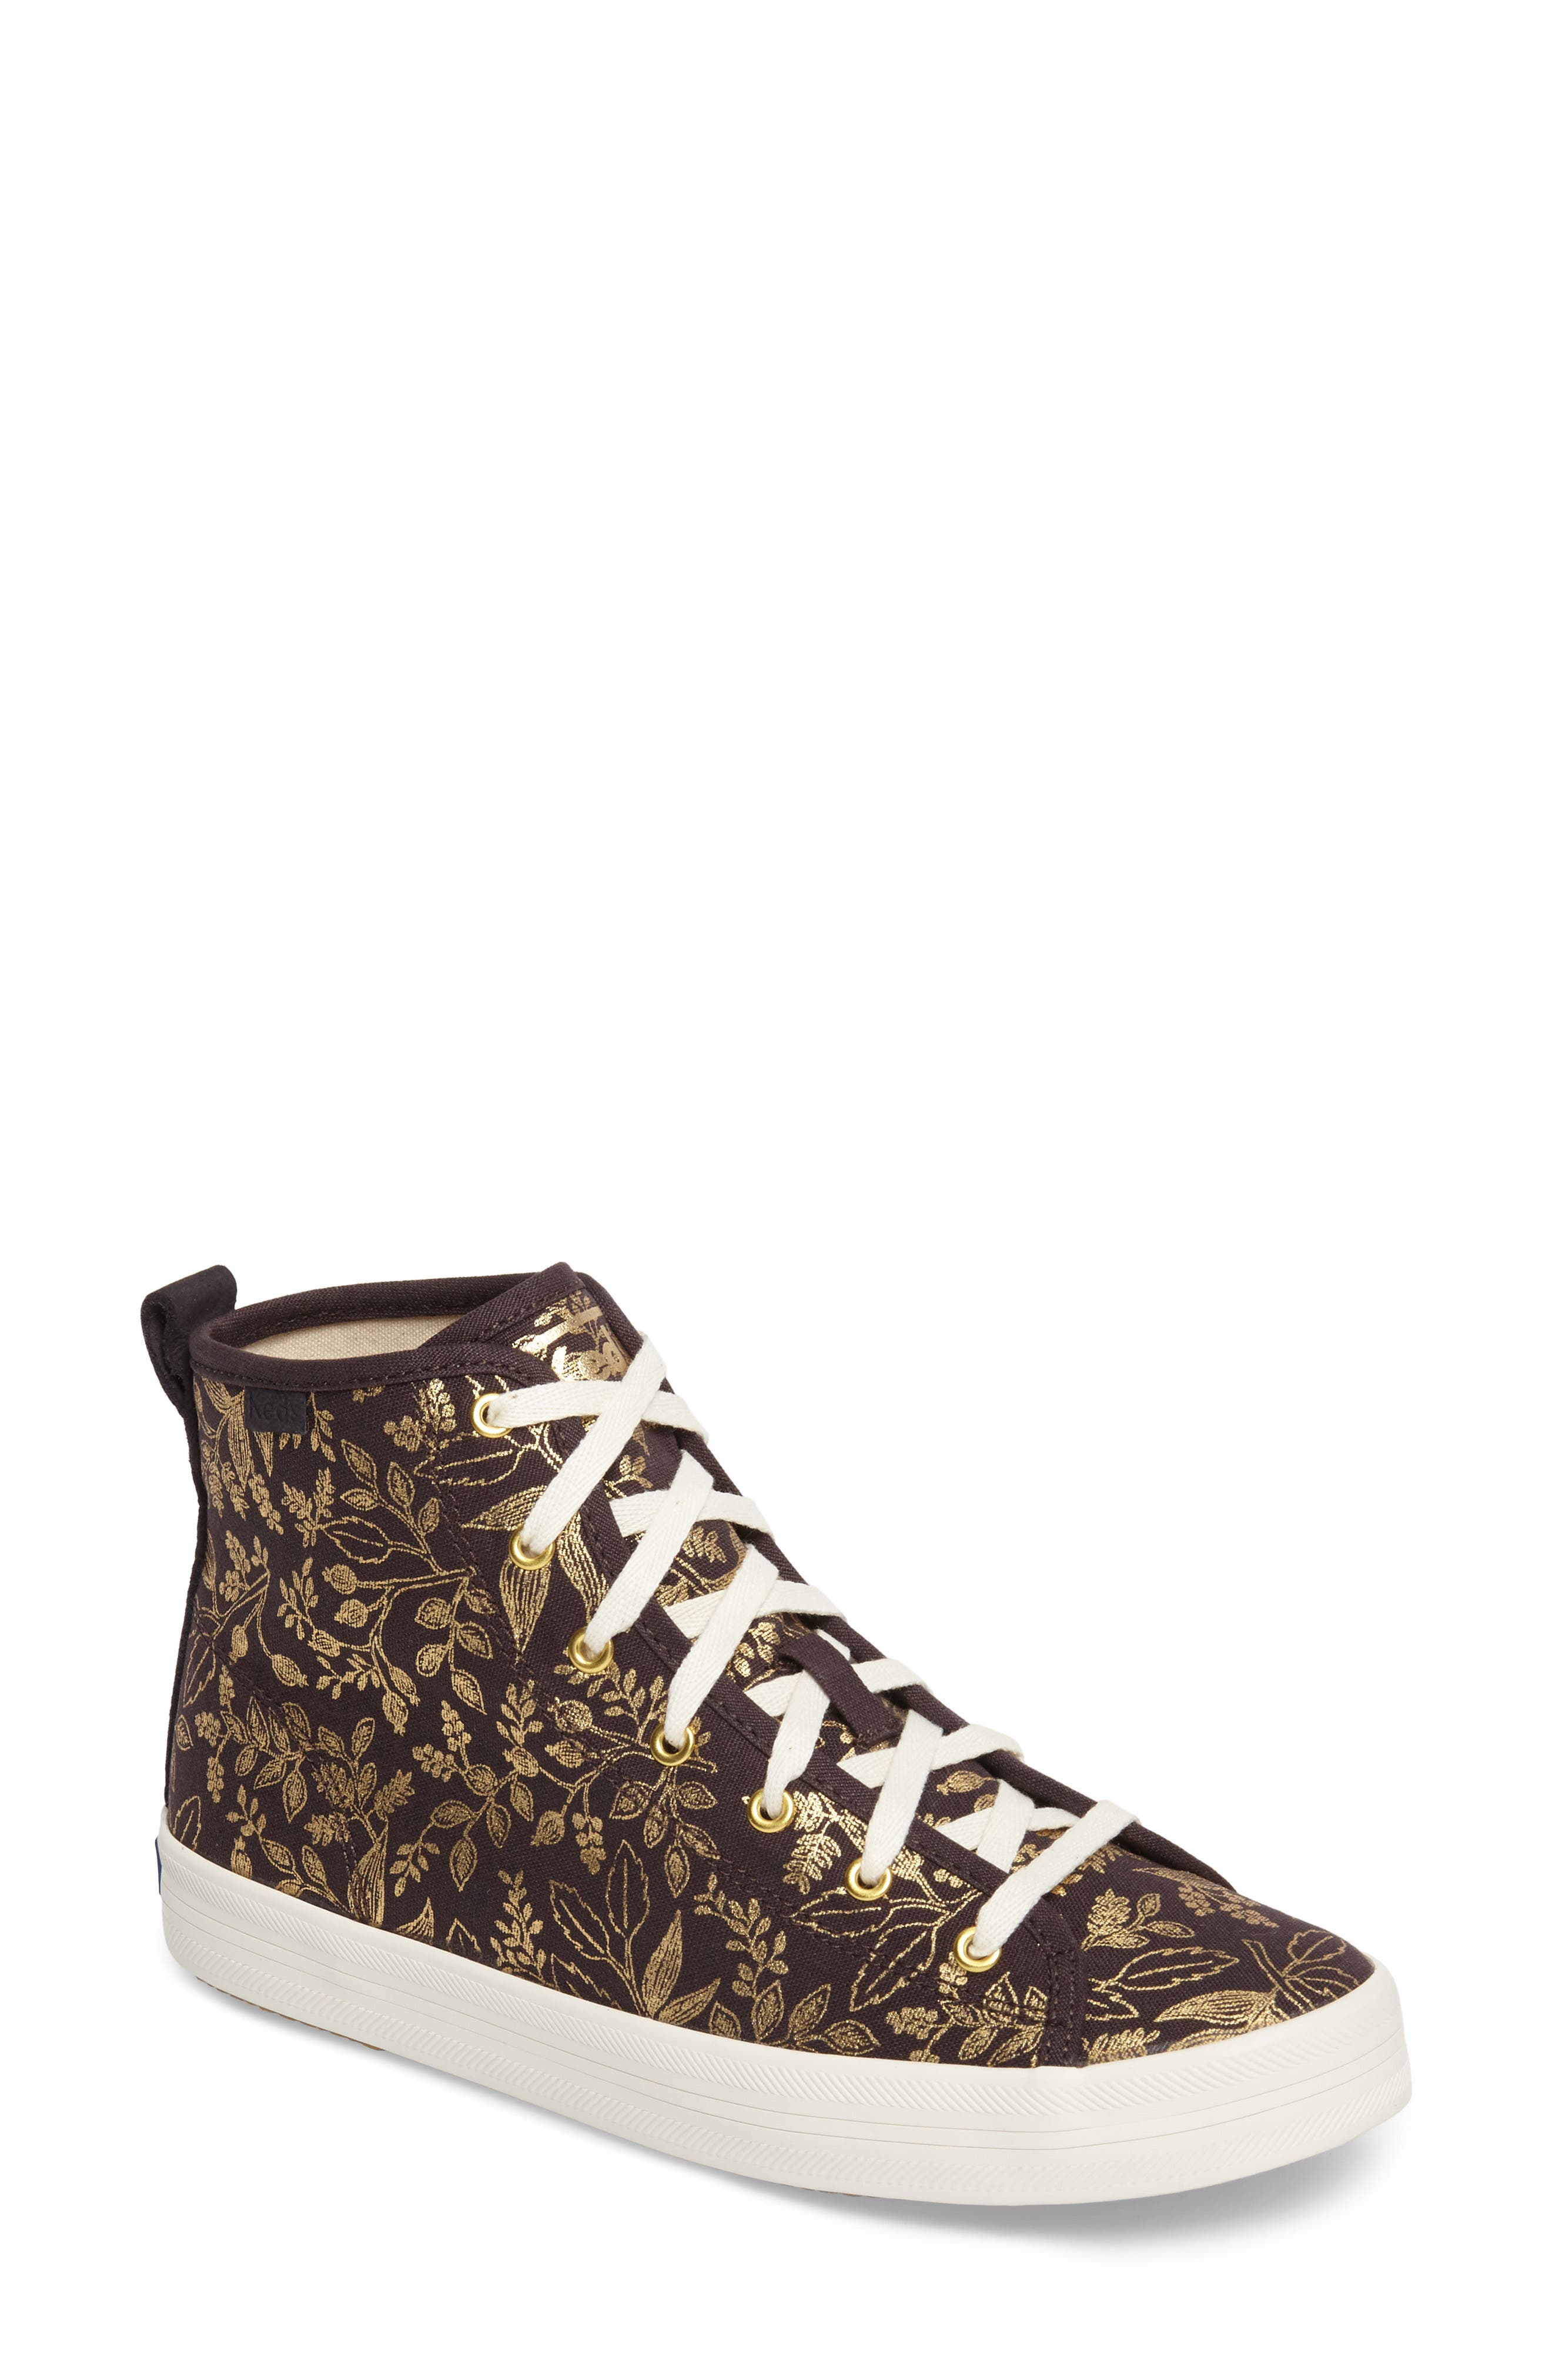 x Rifle Paper Co. Queen Anne High Top Sneaker,                         Main,                         color,